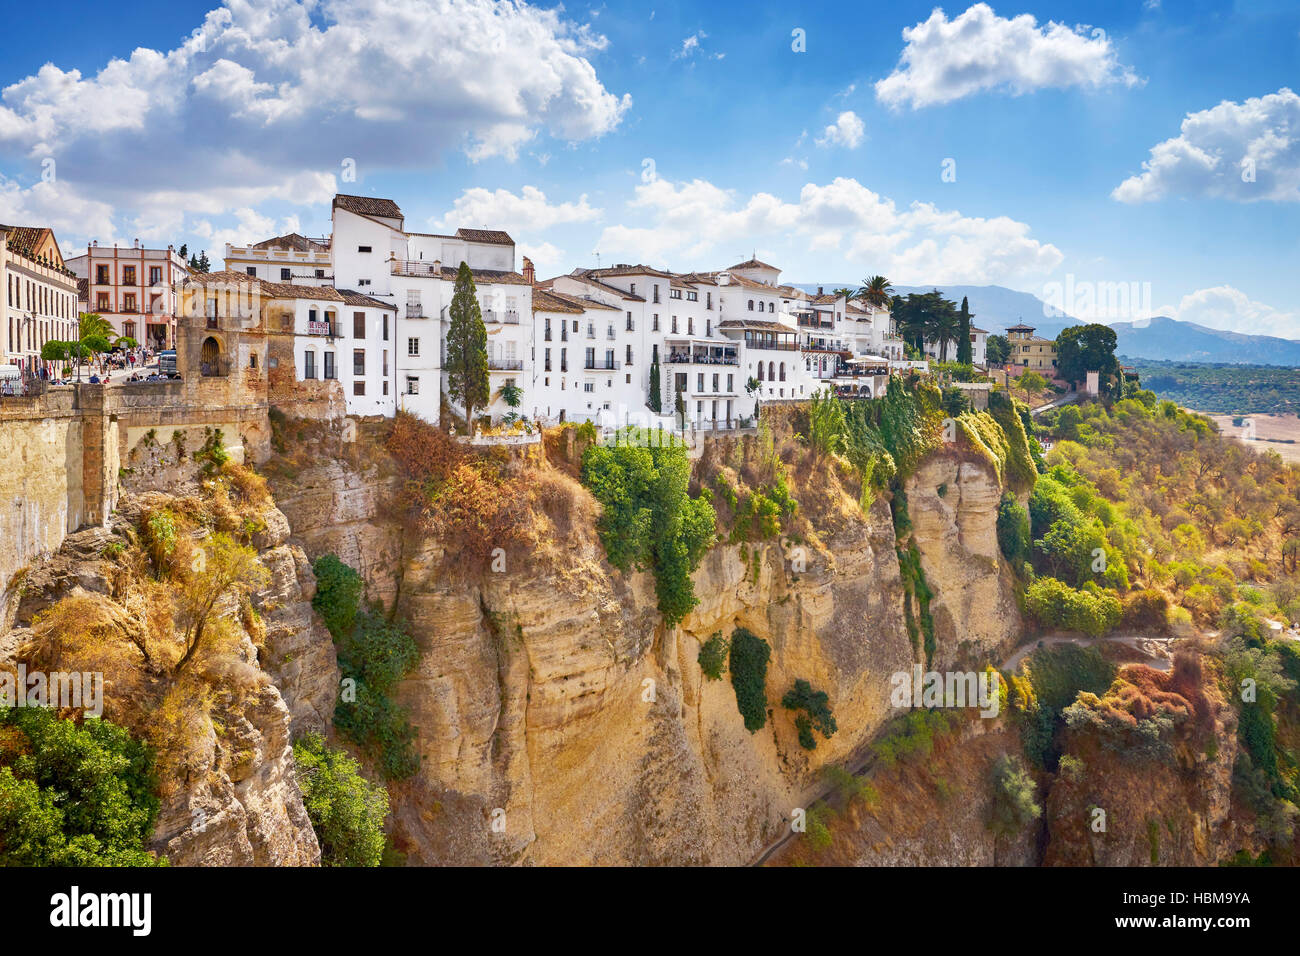 El Tajo Gorge Canyon, Ronda, Andalusia, Spain - Stock Image